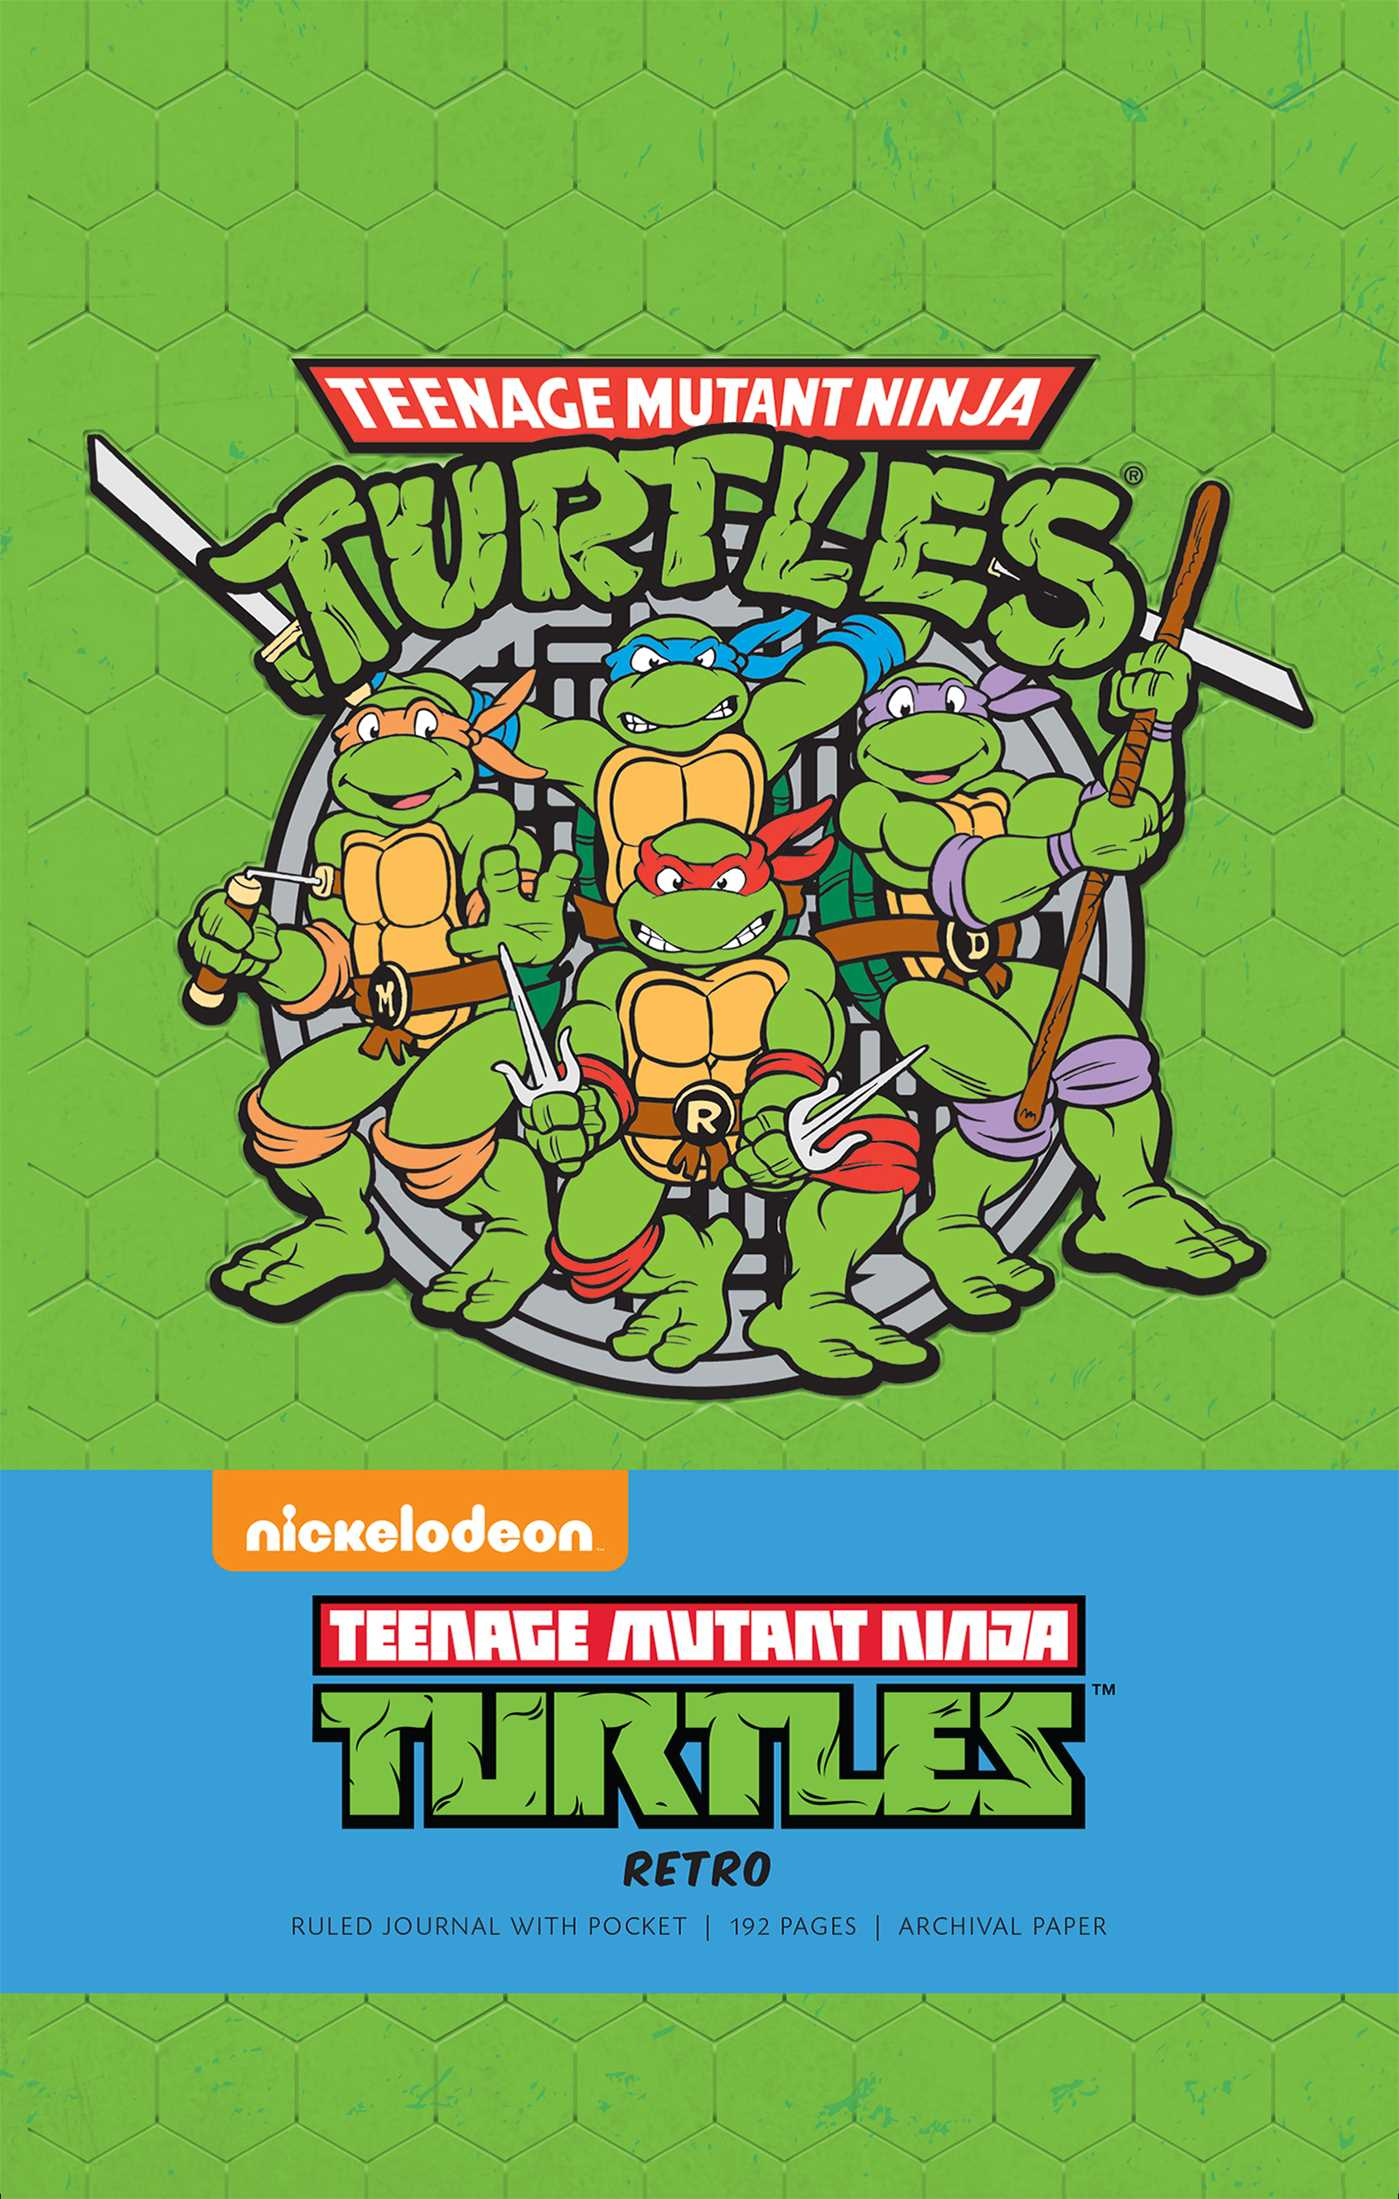 Teenage Mutant Ninja Turtles Retro Hardcover Ruled Journal Book By Insight Editions Official Publisher Page Simon Schuster Canada